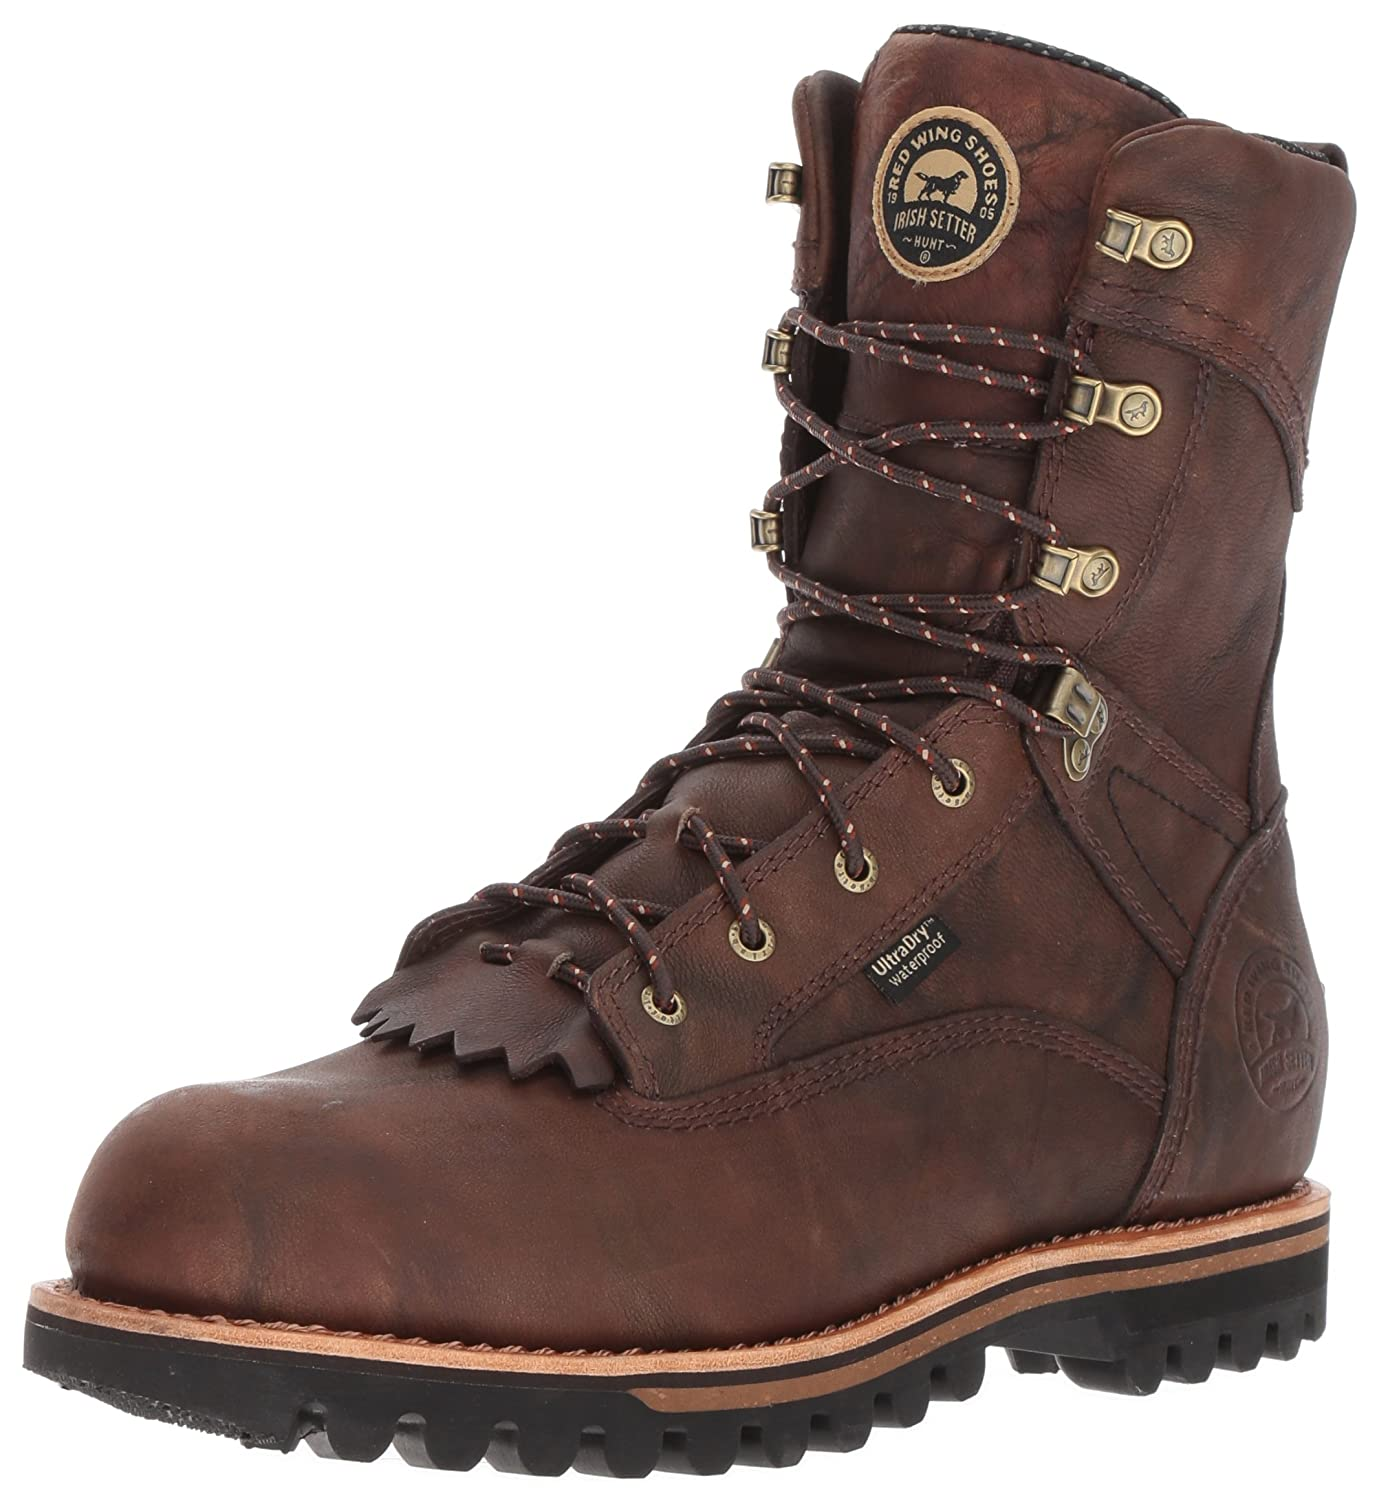 Top 5 Best Hunting Boots for Men 2018-2020 - cover